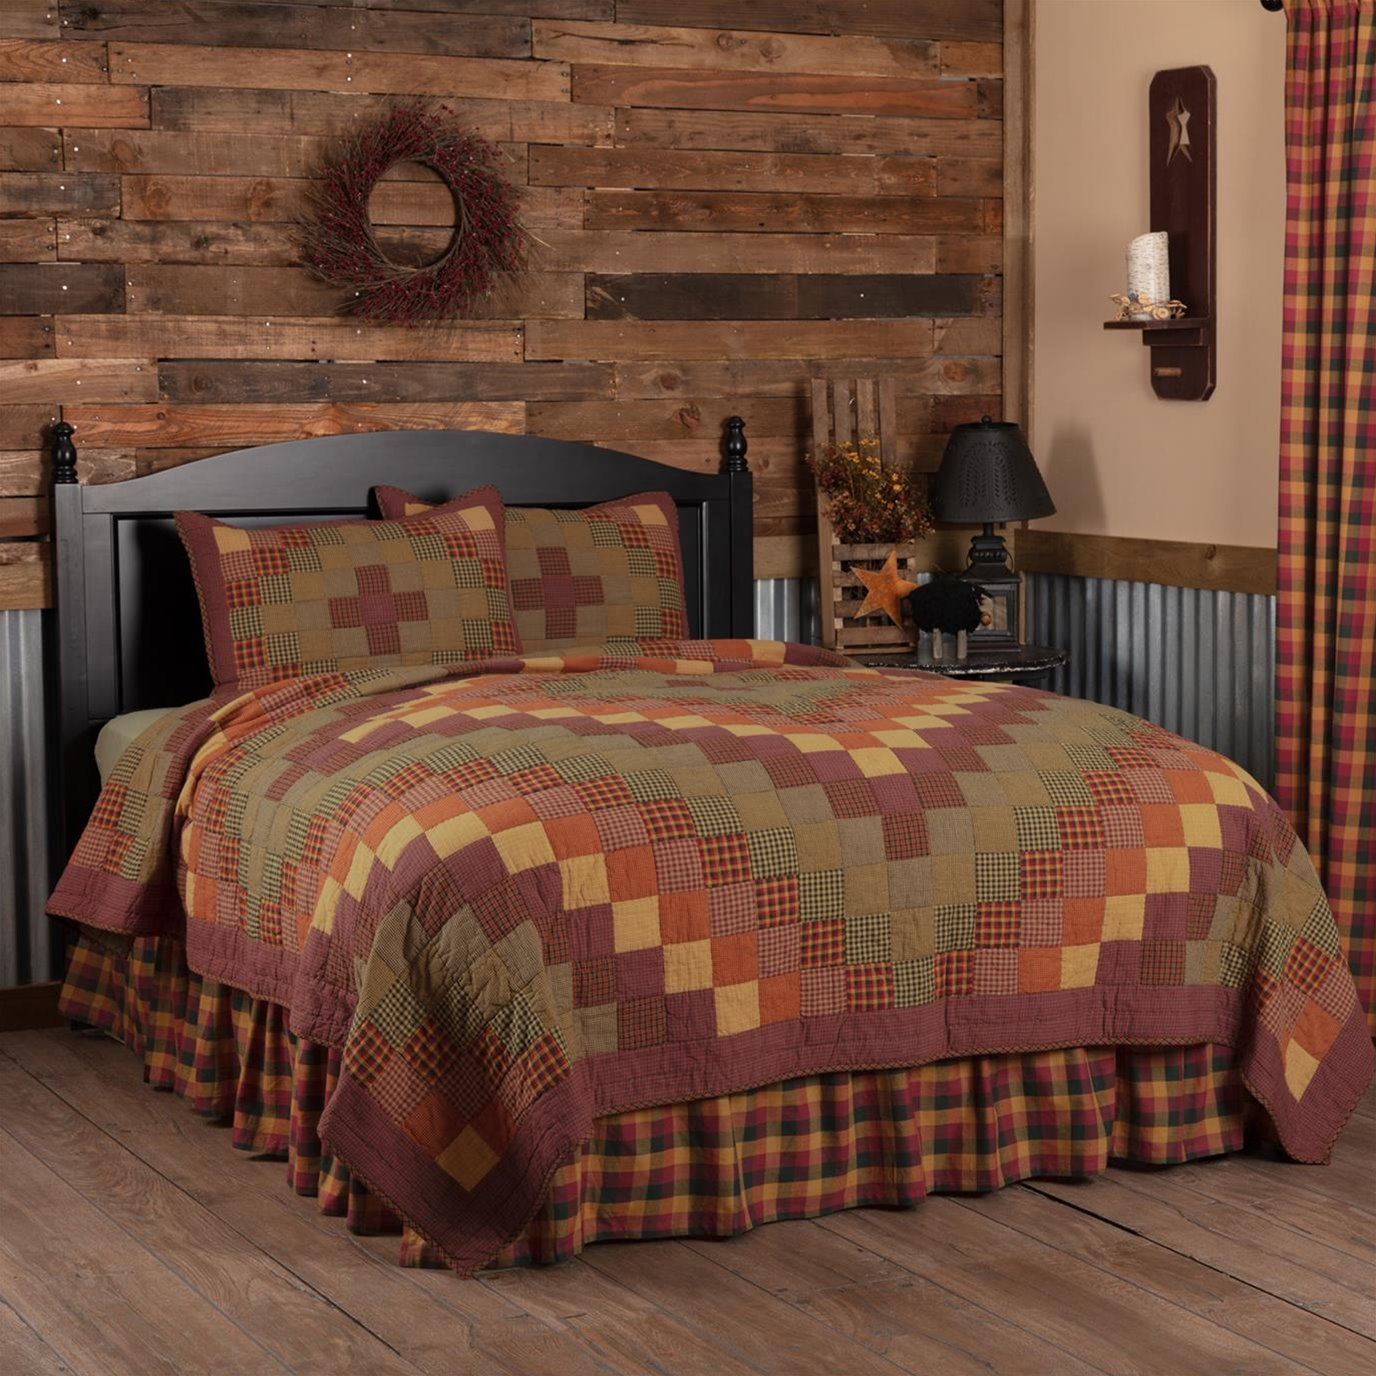 Heritage Farms California King Quilt Set; 1-Quilt 130Wx115L w/2 Shams 21x37